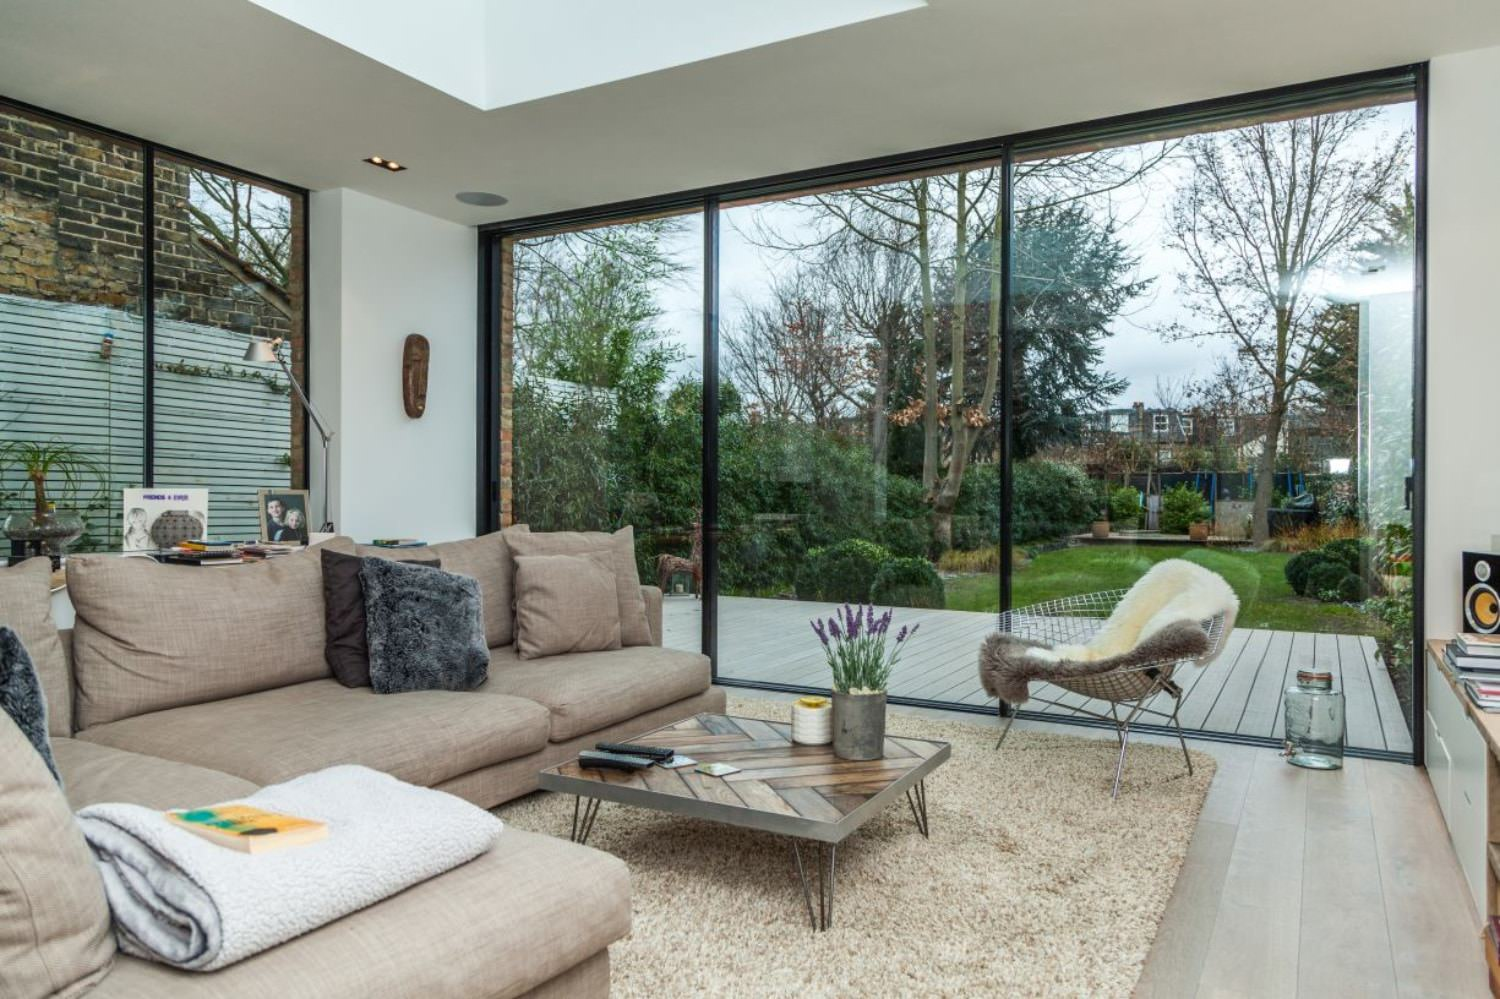 Richmond london infiniglide sliding doors